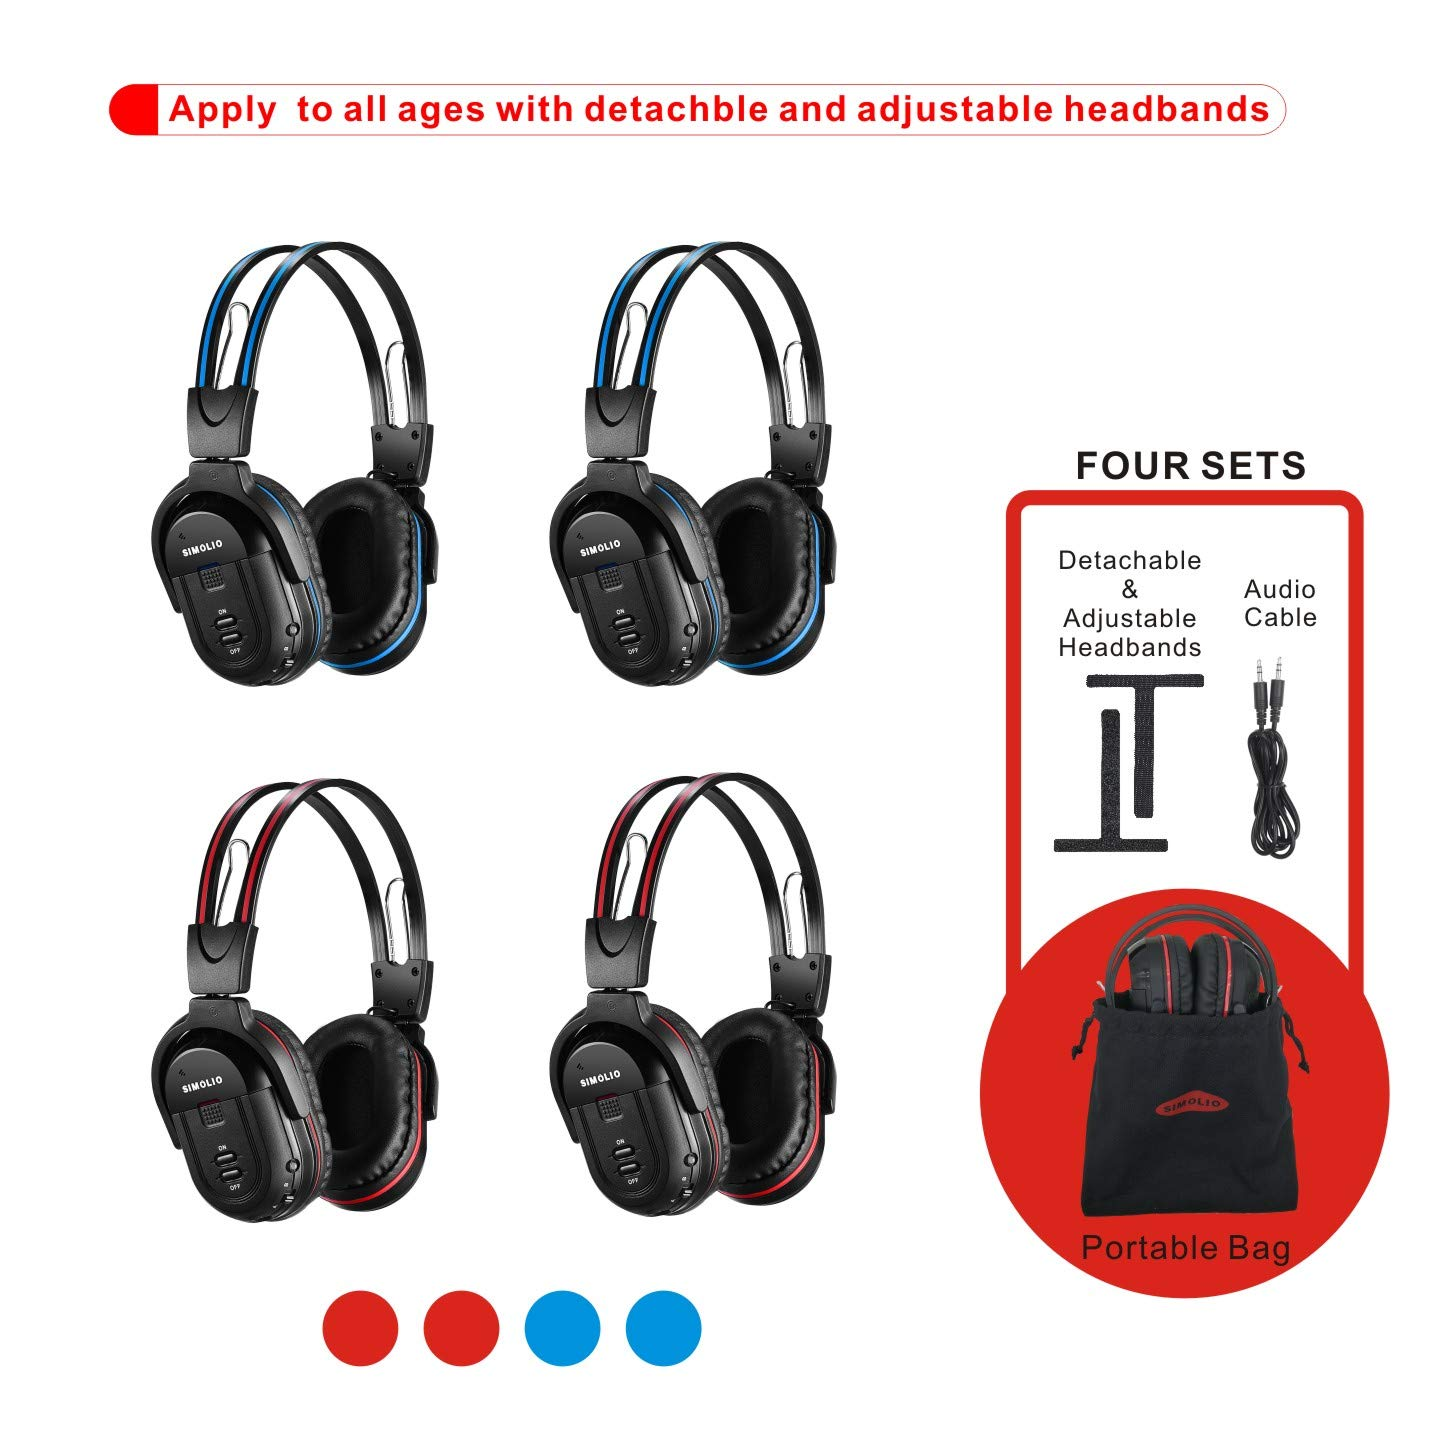 4 Pack of DVD Wireless Headphones, Car Kids Headphones, IR Headphones for Car Entertainment System, Wireless IR Headphones with Dual Channel by SIMOLIO